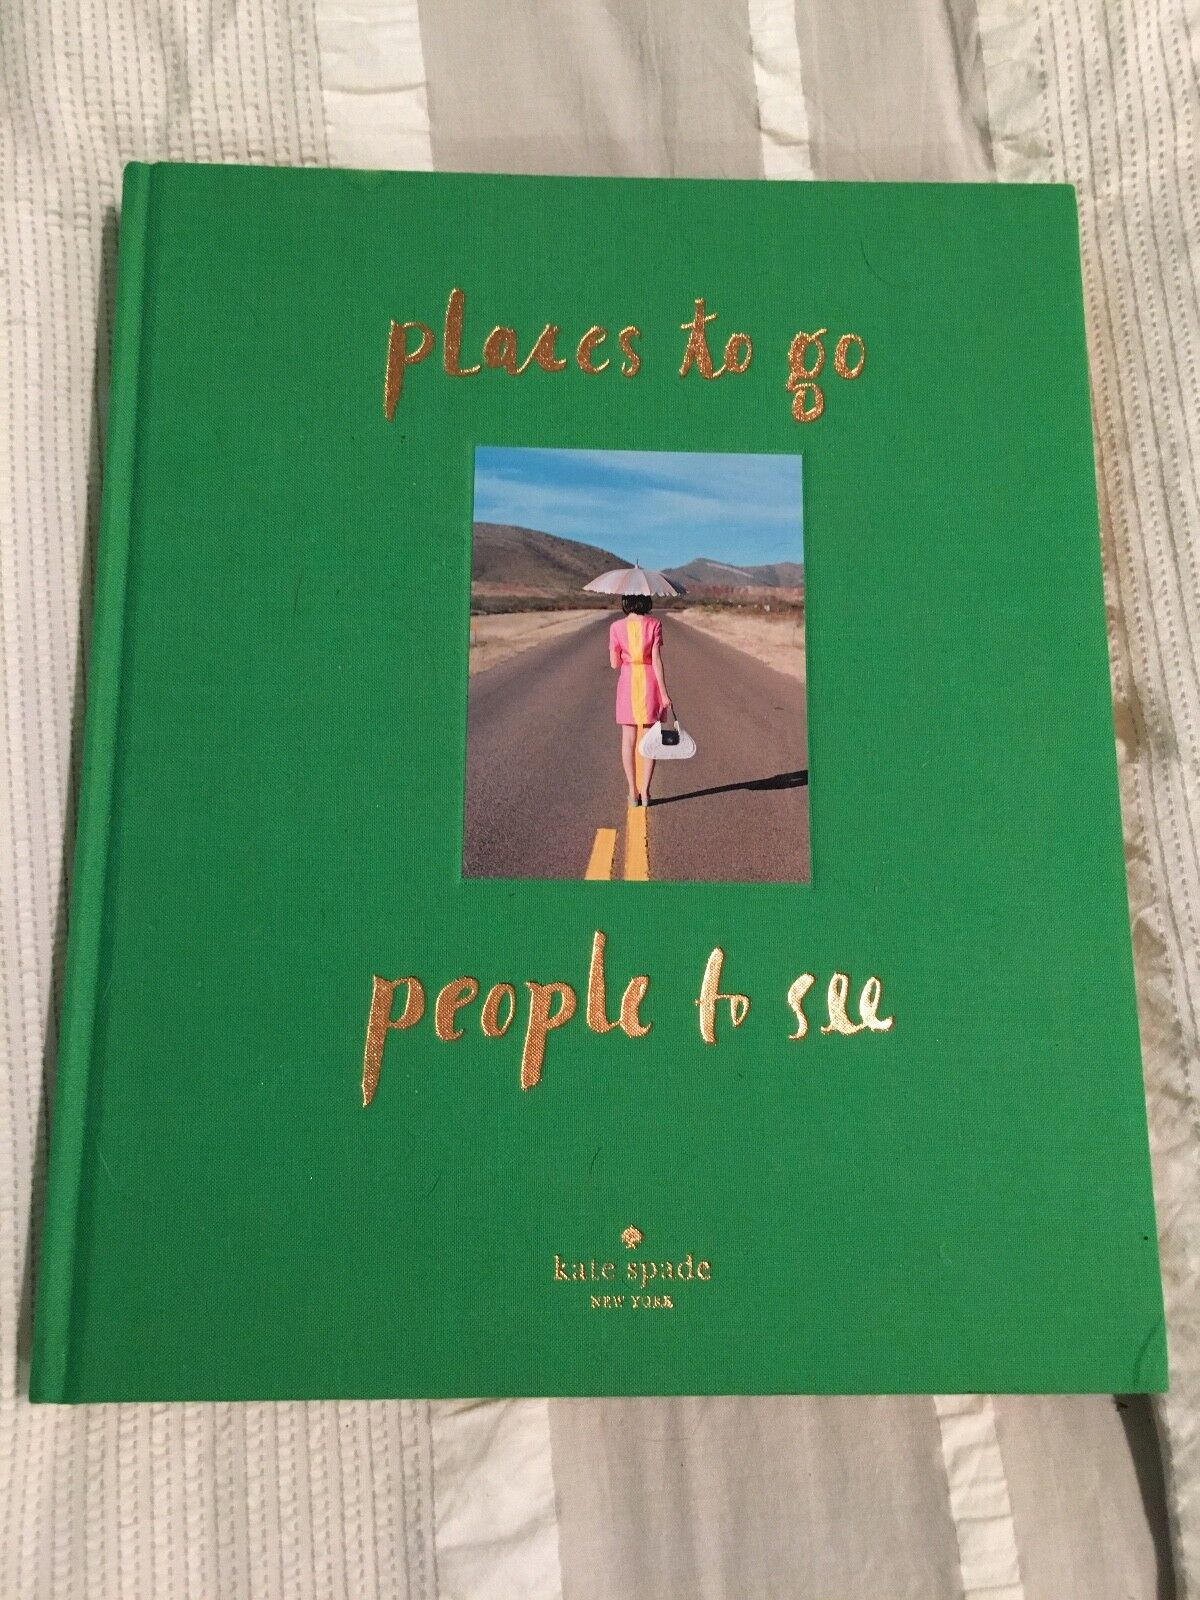 Kate Spade New York - Places to Go, People to See by Kate Sp